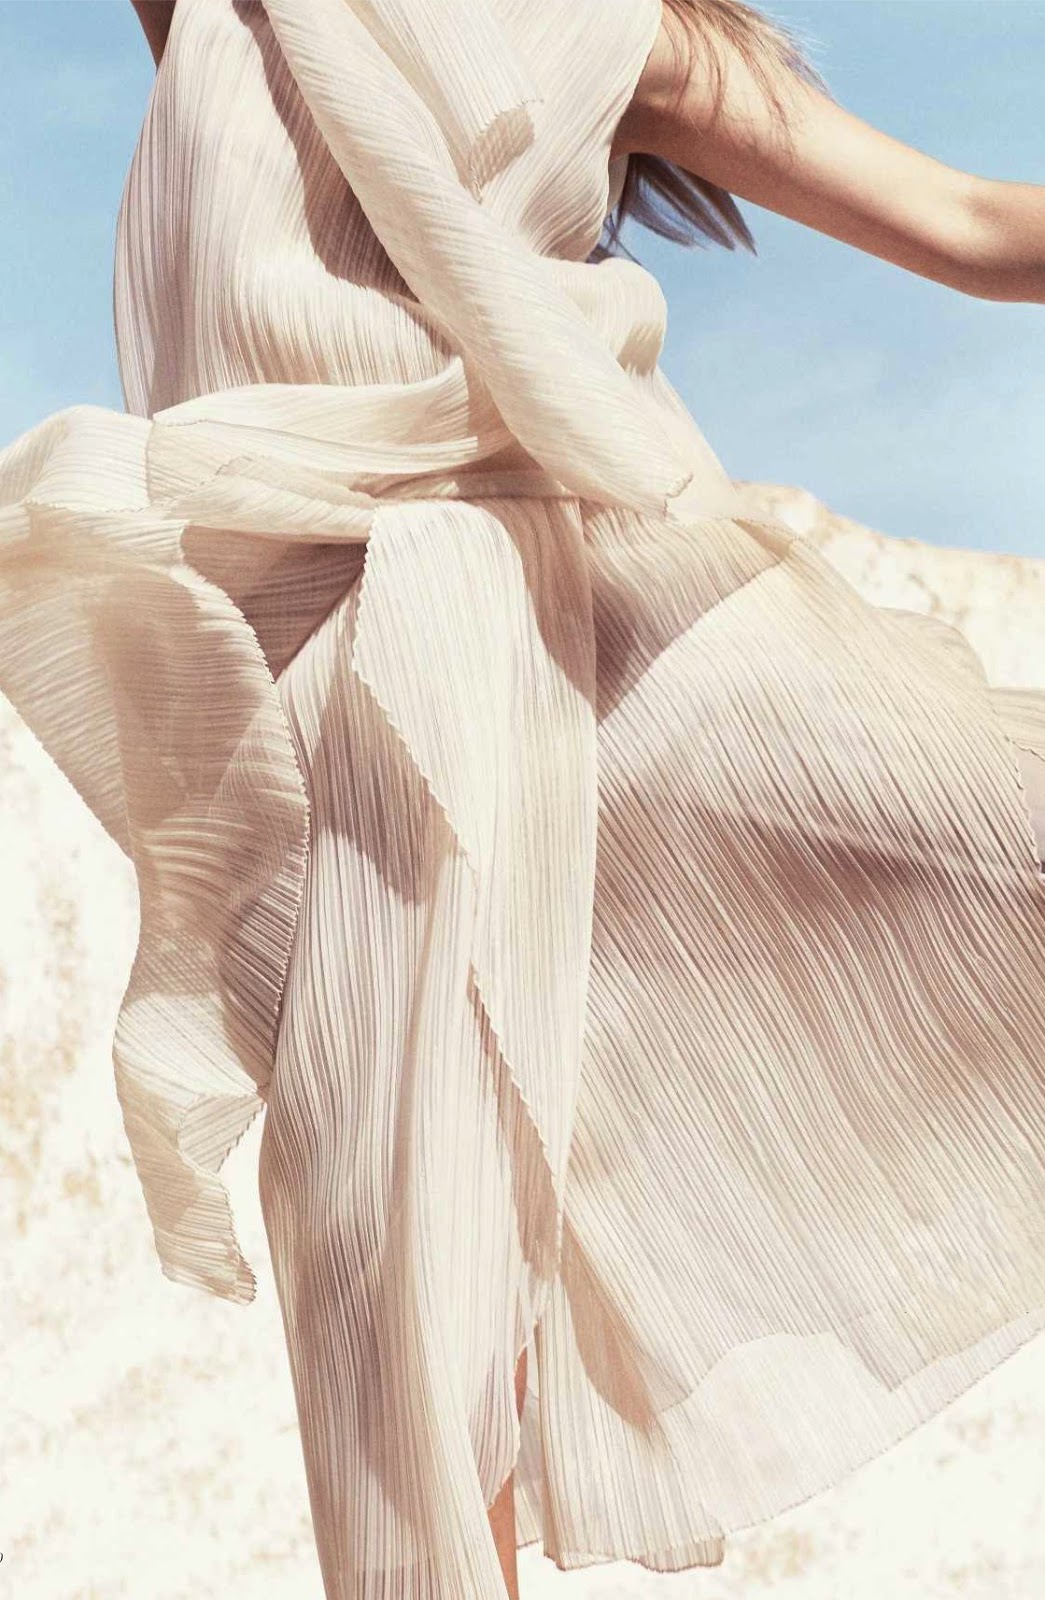 Most beautiful linen wardrobe pieces and essentials to buy now / Photo source: Larissa Hofmann in White Heat / Harper's Bazaar Germany June/July 2016 (photography: Marcus Ohlsson, styling: Kerstin Schneider) via www.fashionedbylove.co.uk